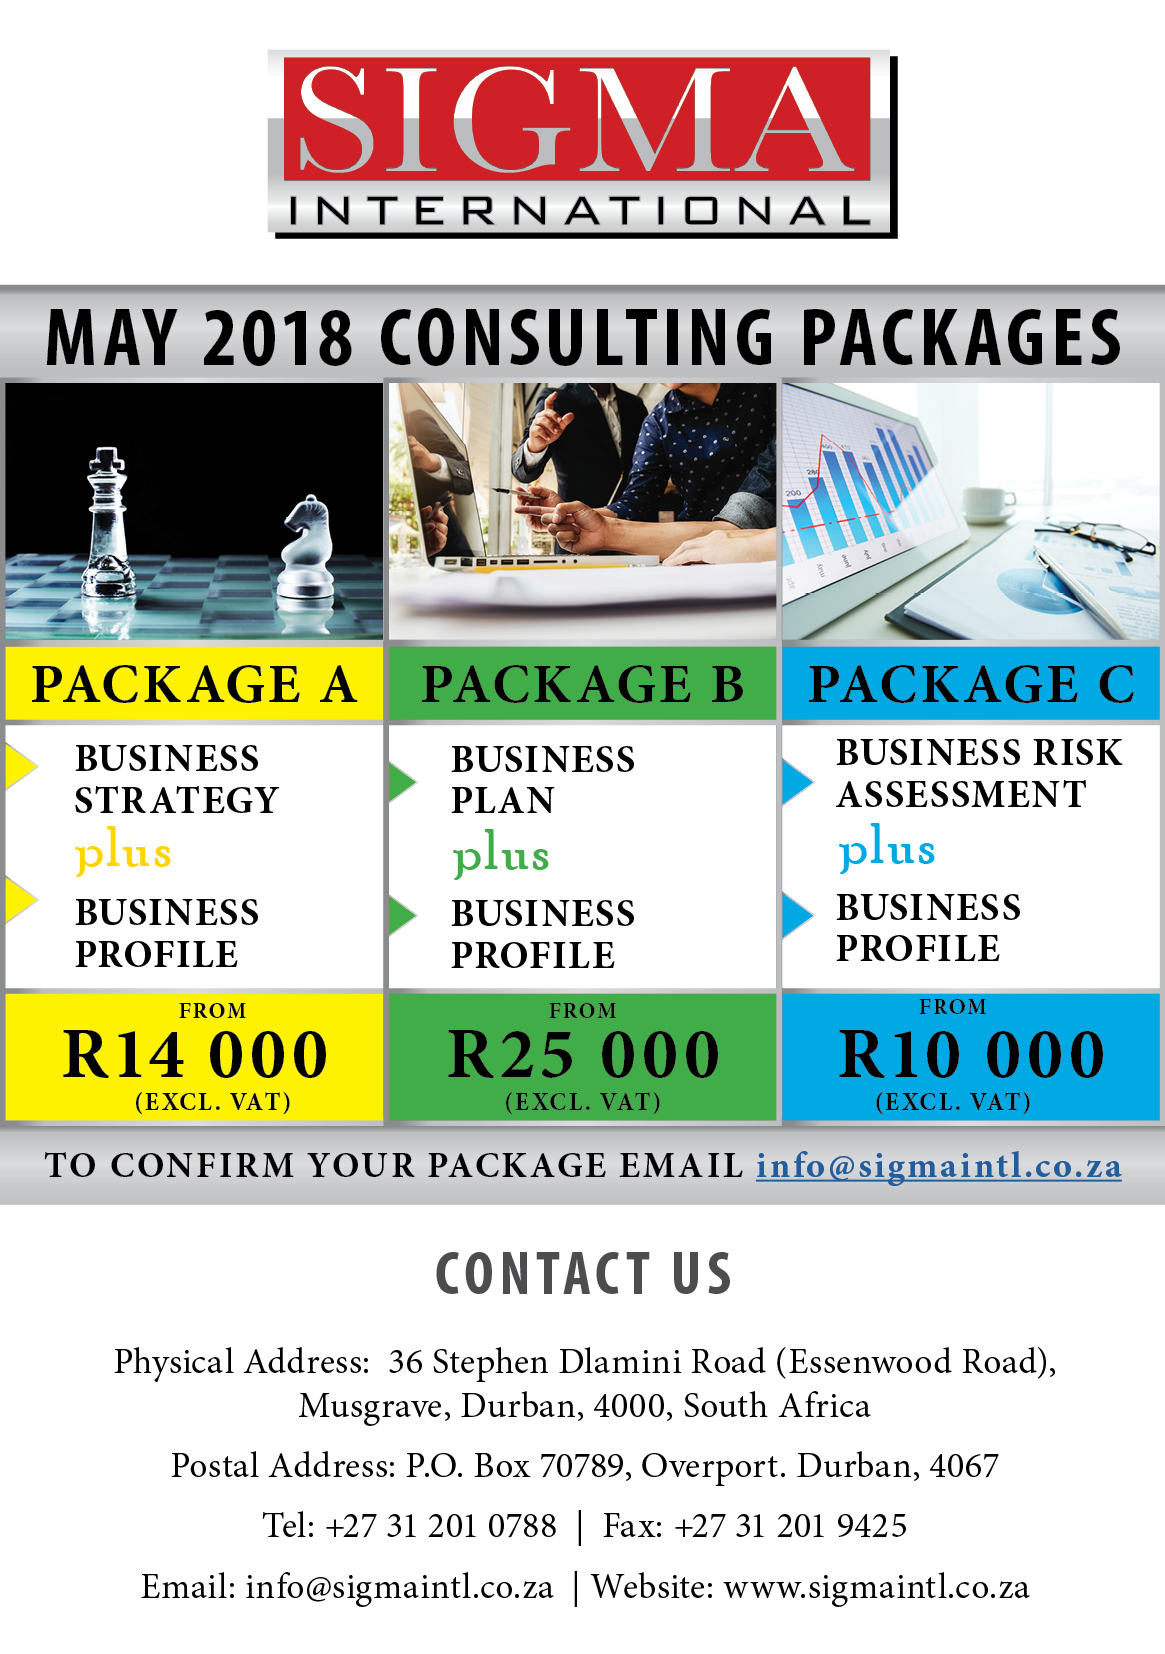 MAY 2018 CONSULTING PACKAGES